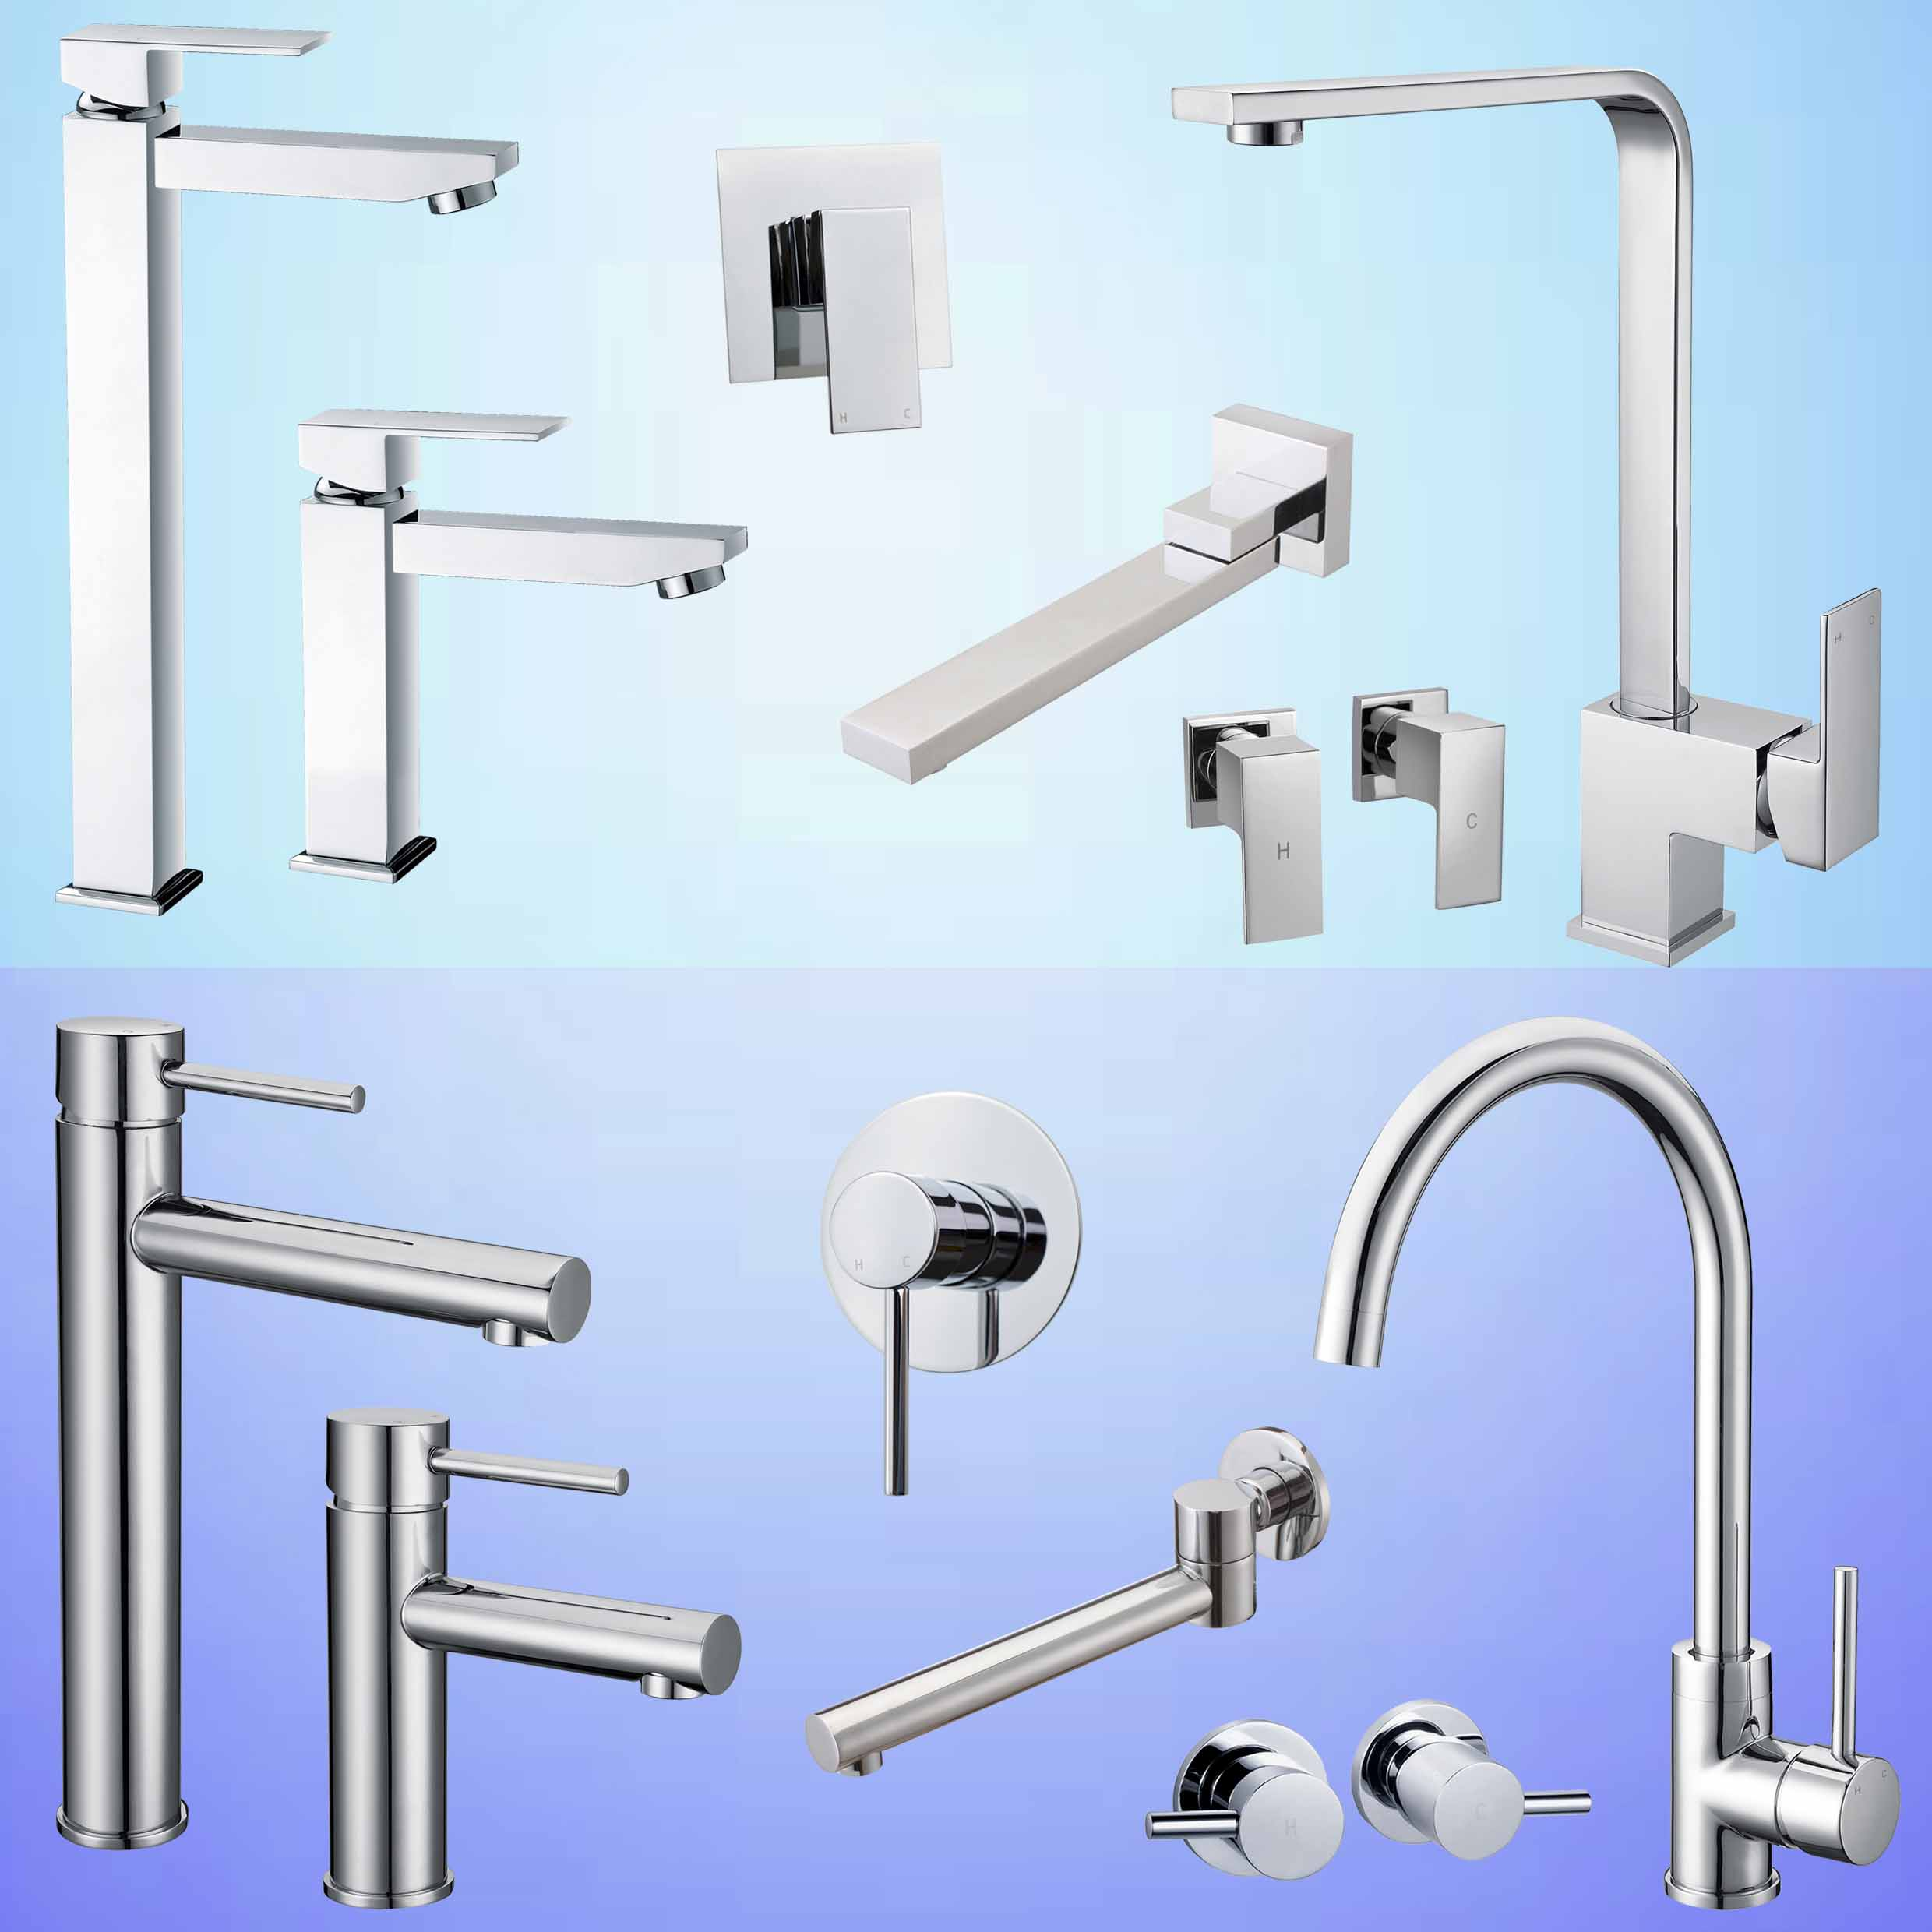 600/800/900/1000/1200/1800MM Tile Insert Linear Floor Drain Shower ...